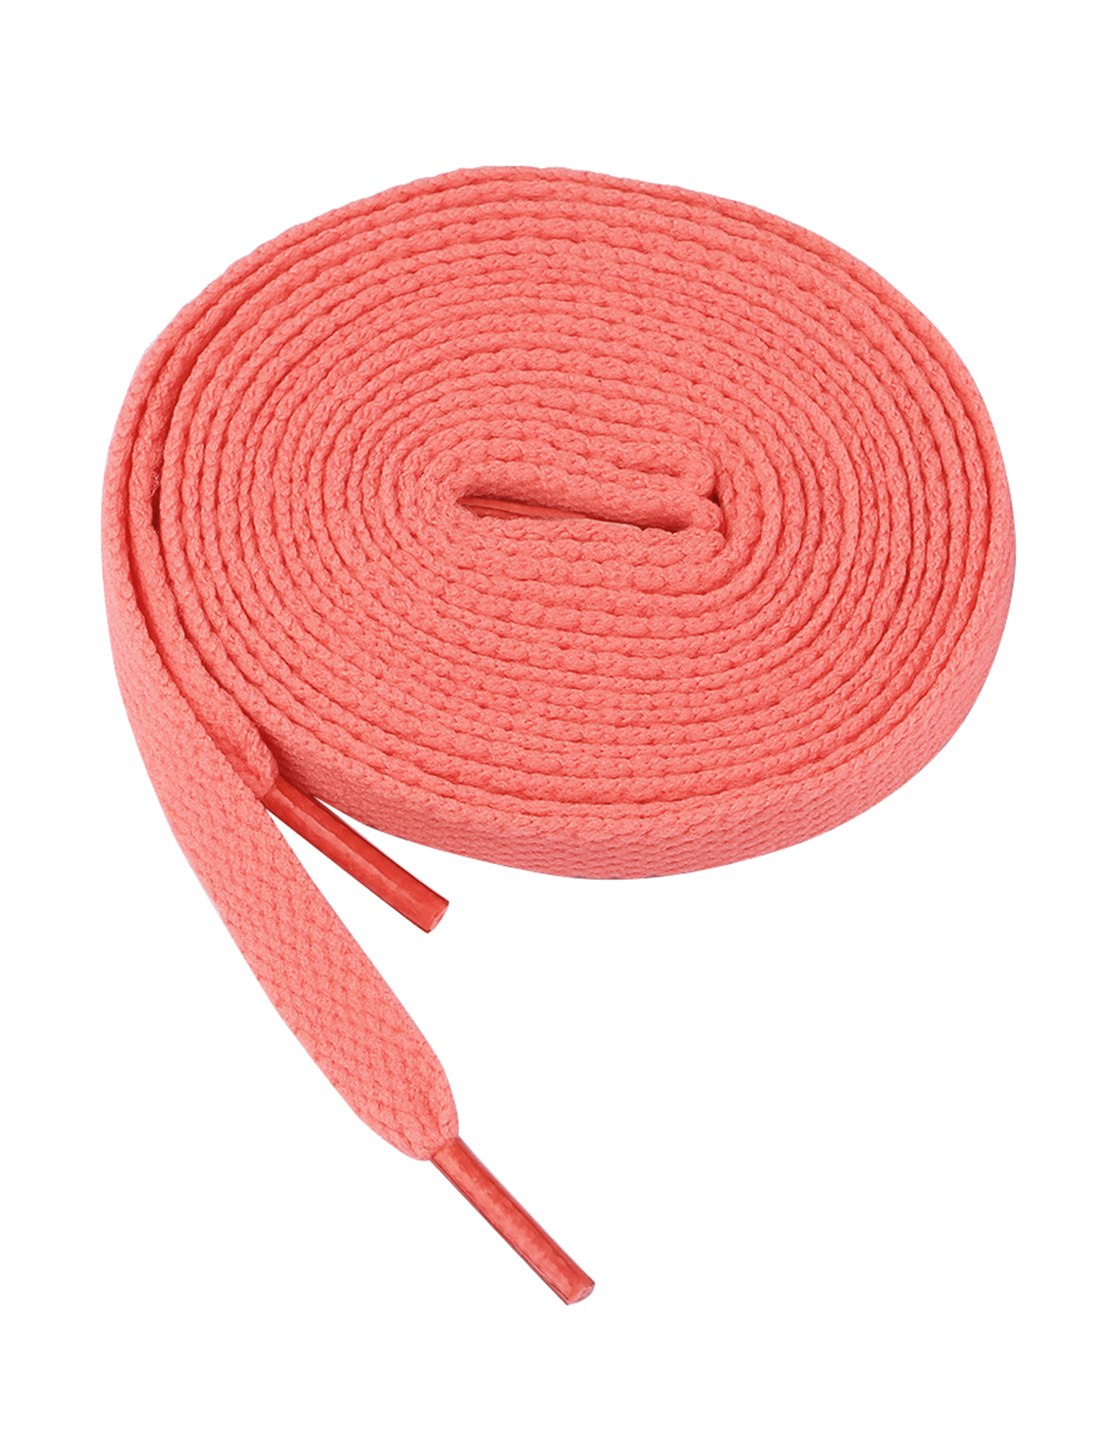 "Woman Pair 46.9"" Length Flat Shoes String Shoelaces Peach Pink"